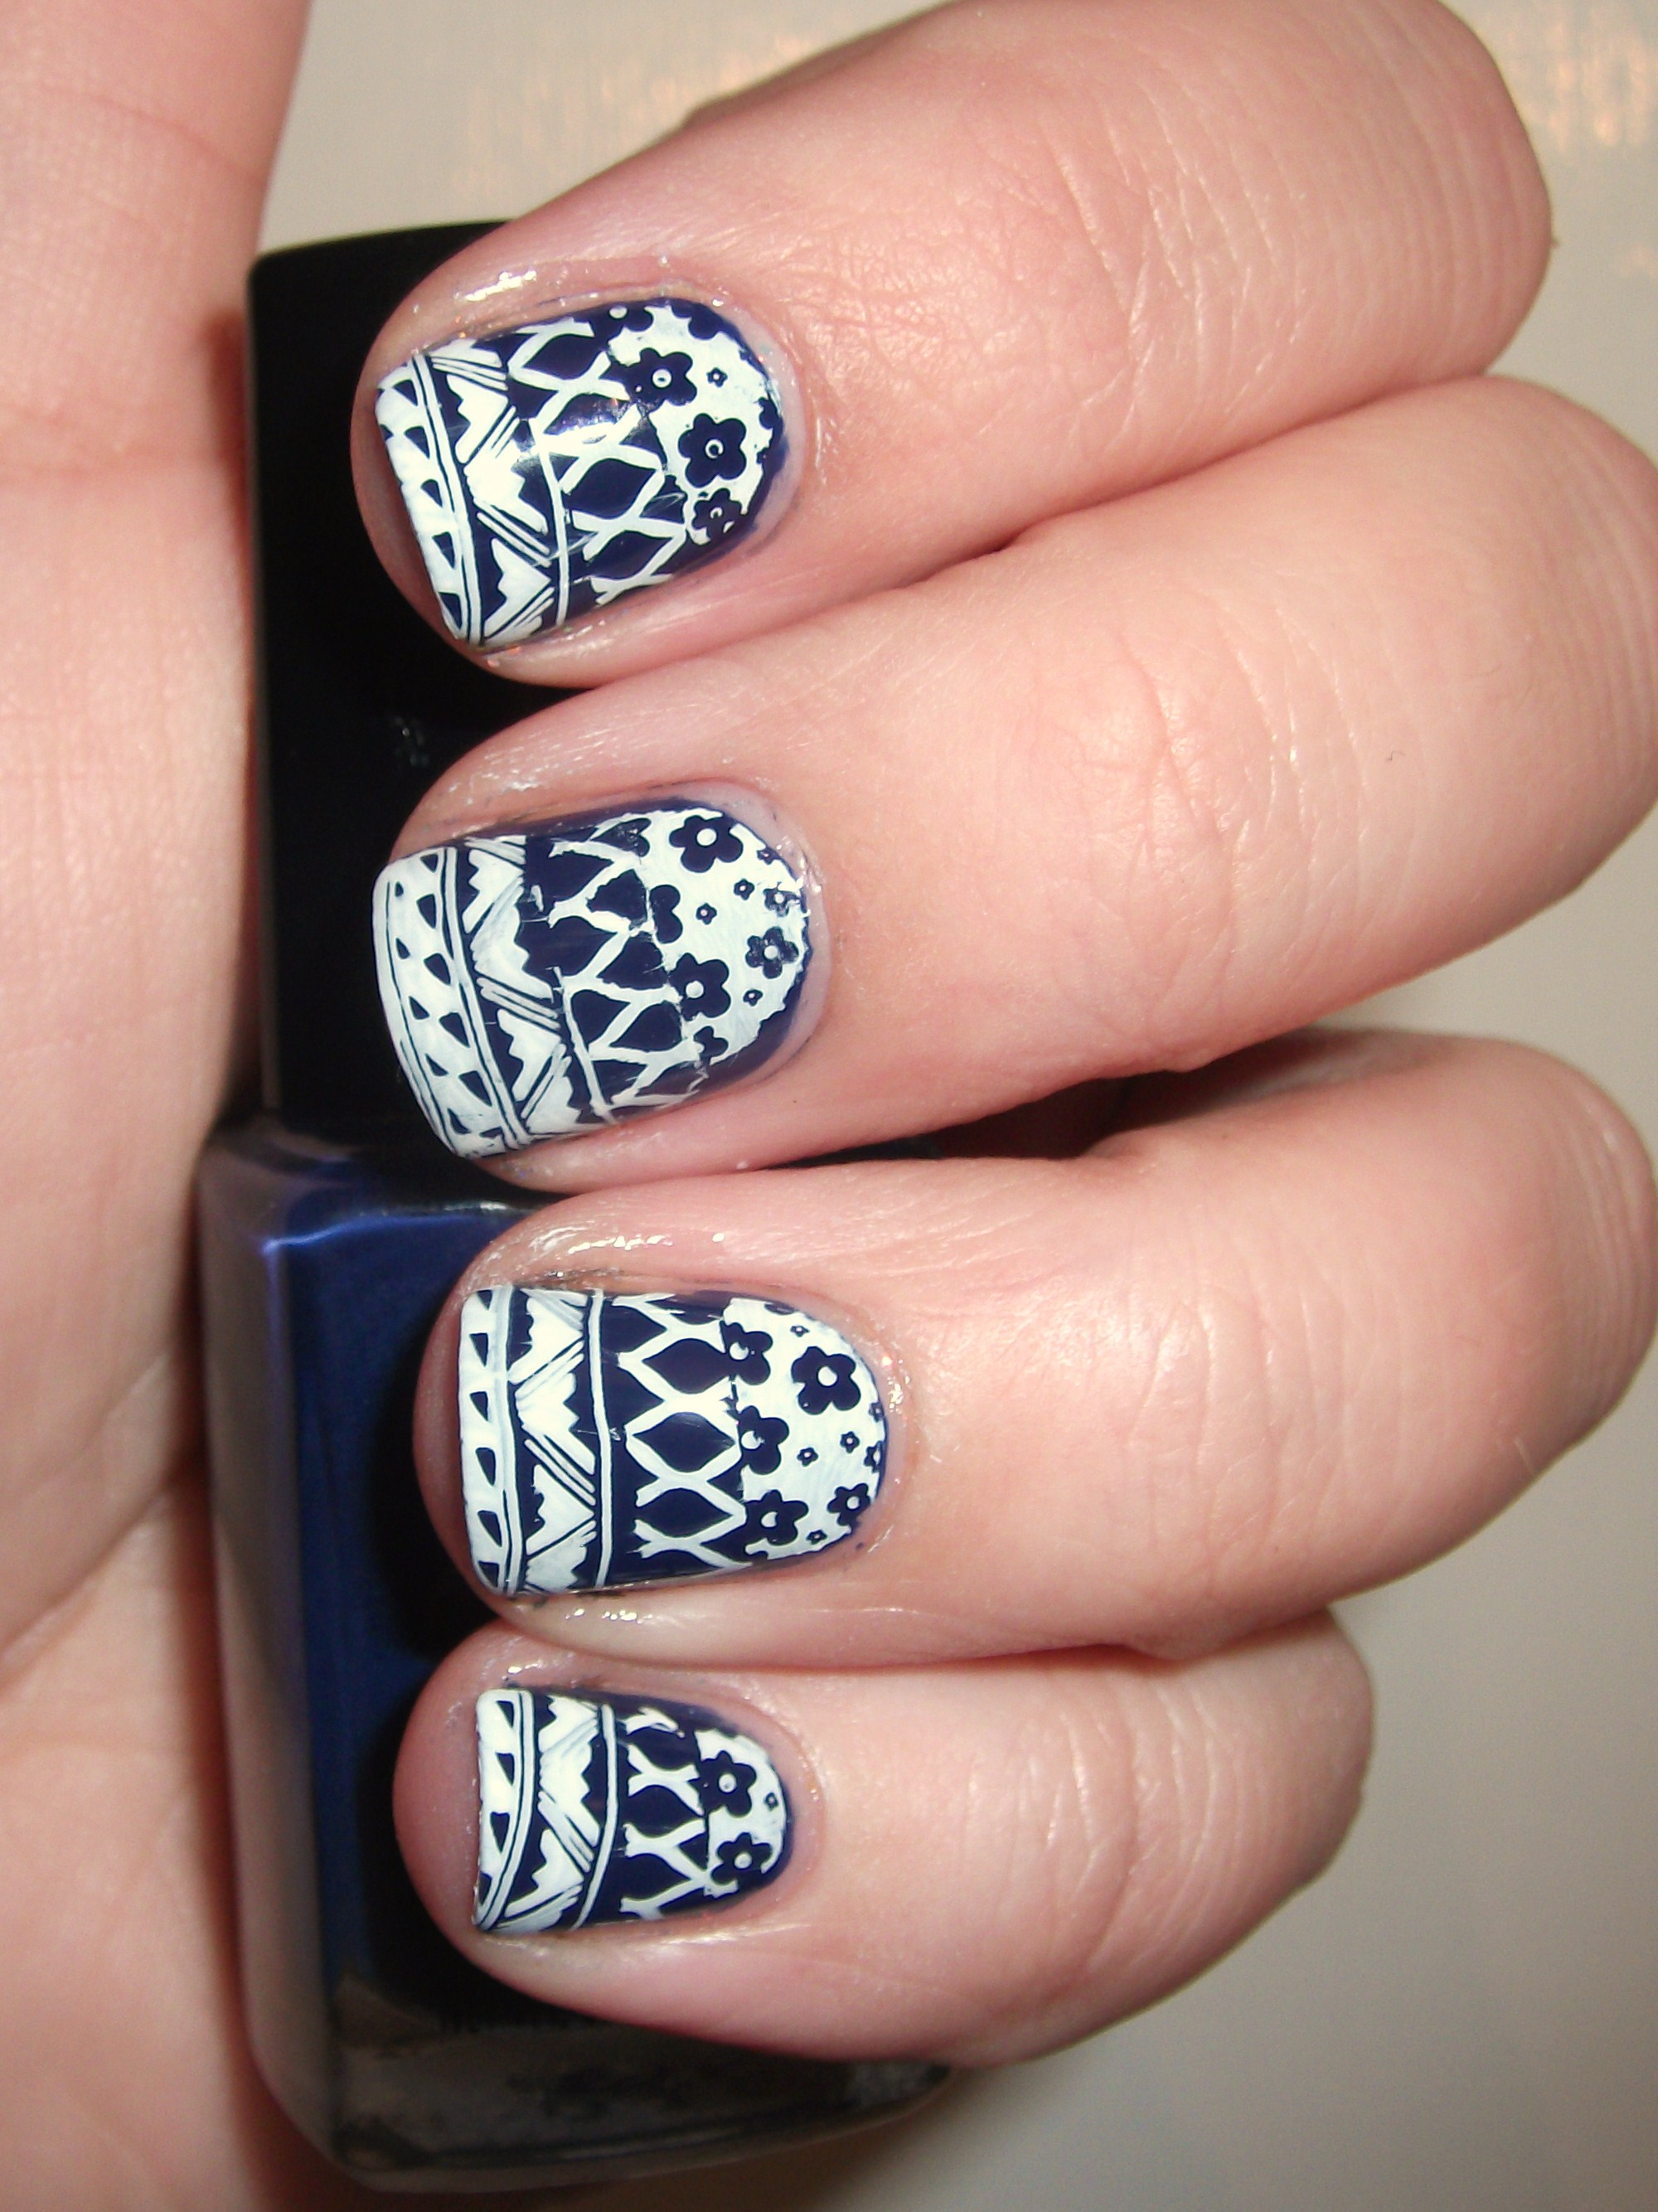 Navy mixed print nails polish me please navy mixed print nails prinsesfo Choice Image